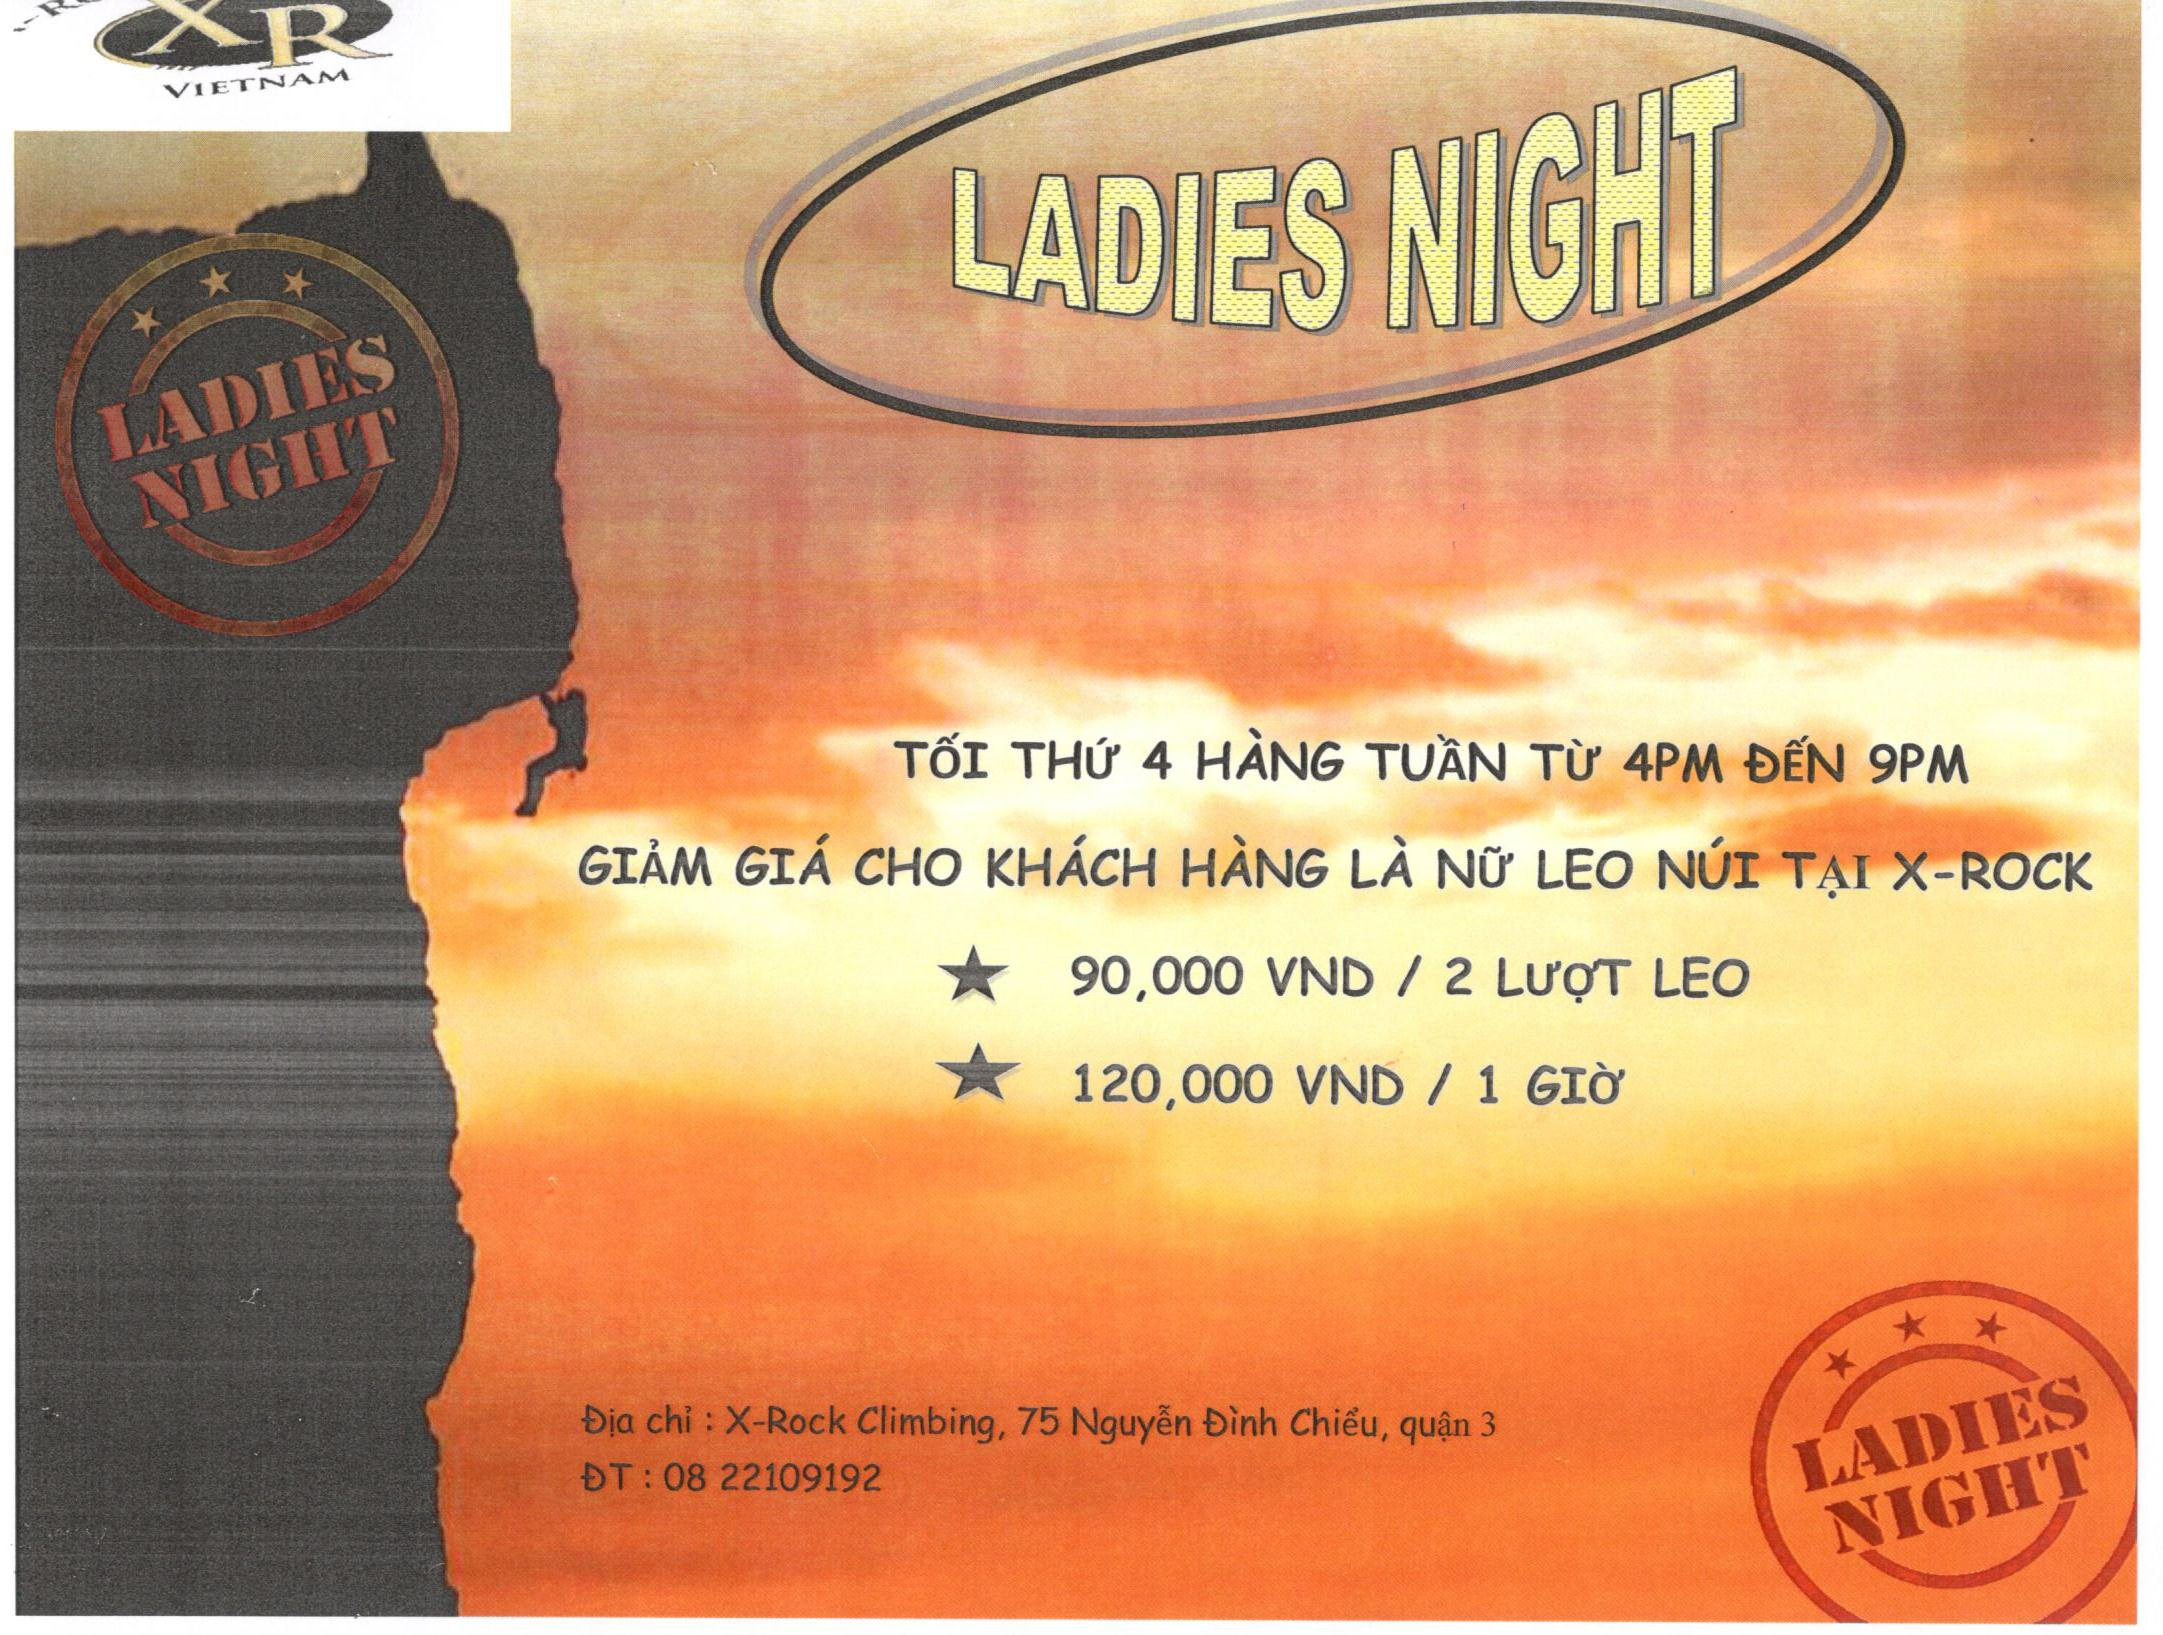 Wednesday  Ladies' night from 4pm to 9 pm ----  Discount for female customers